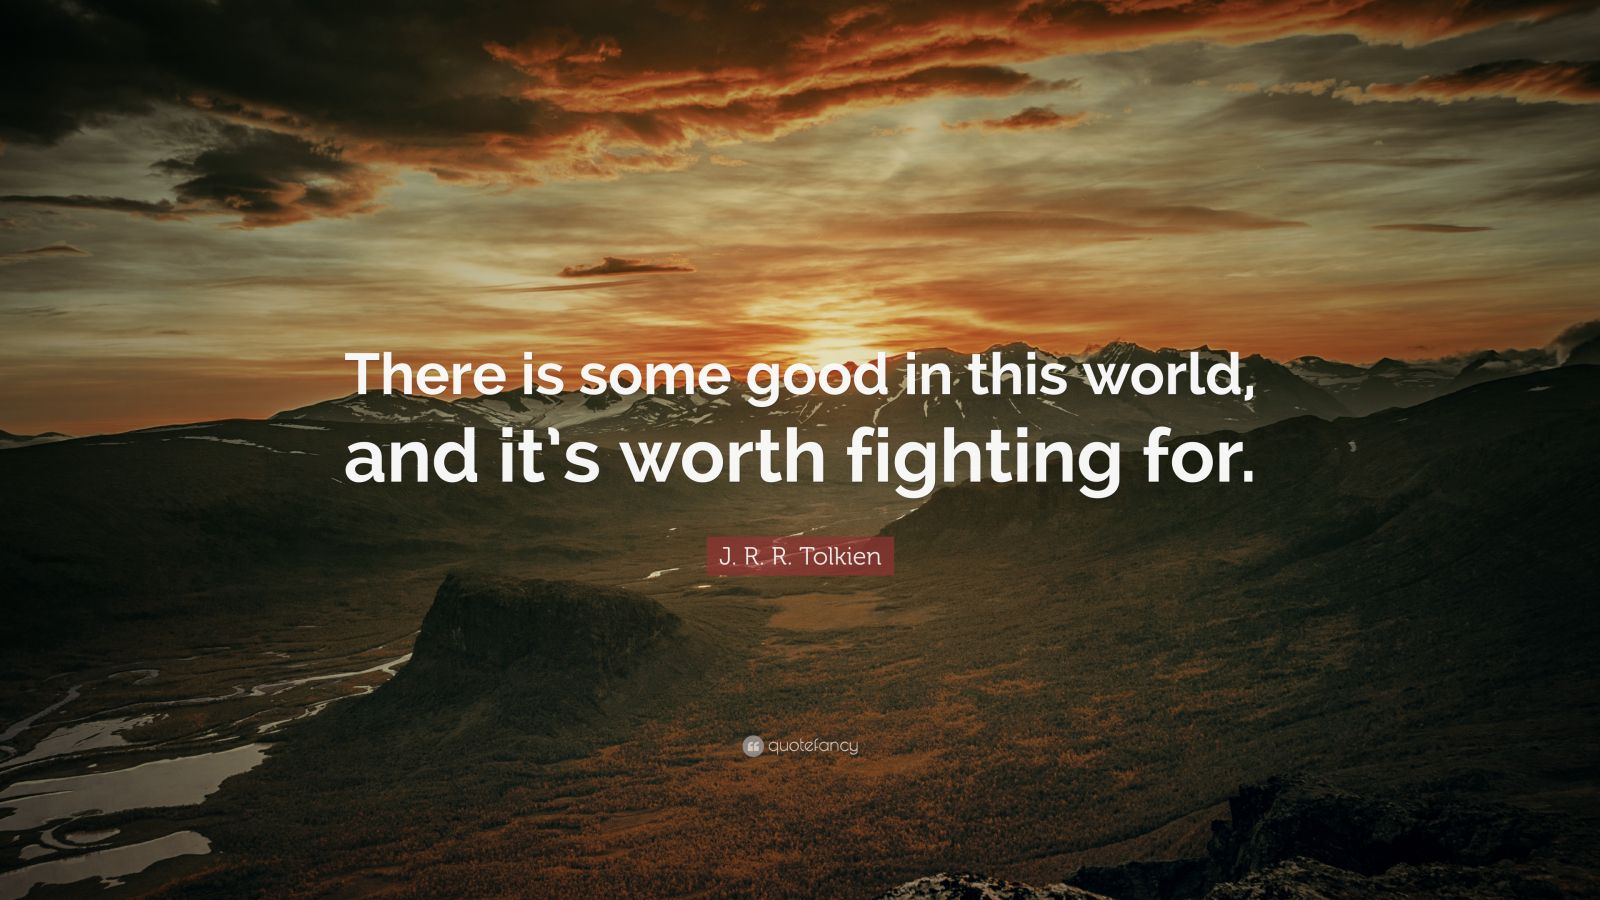 """J. R. R. Tolkien Quote: """"There Is Some Good In This World"""